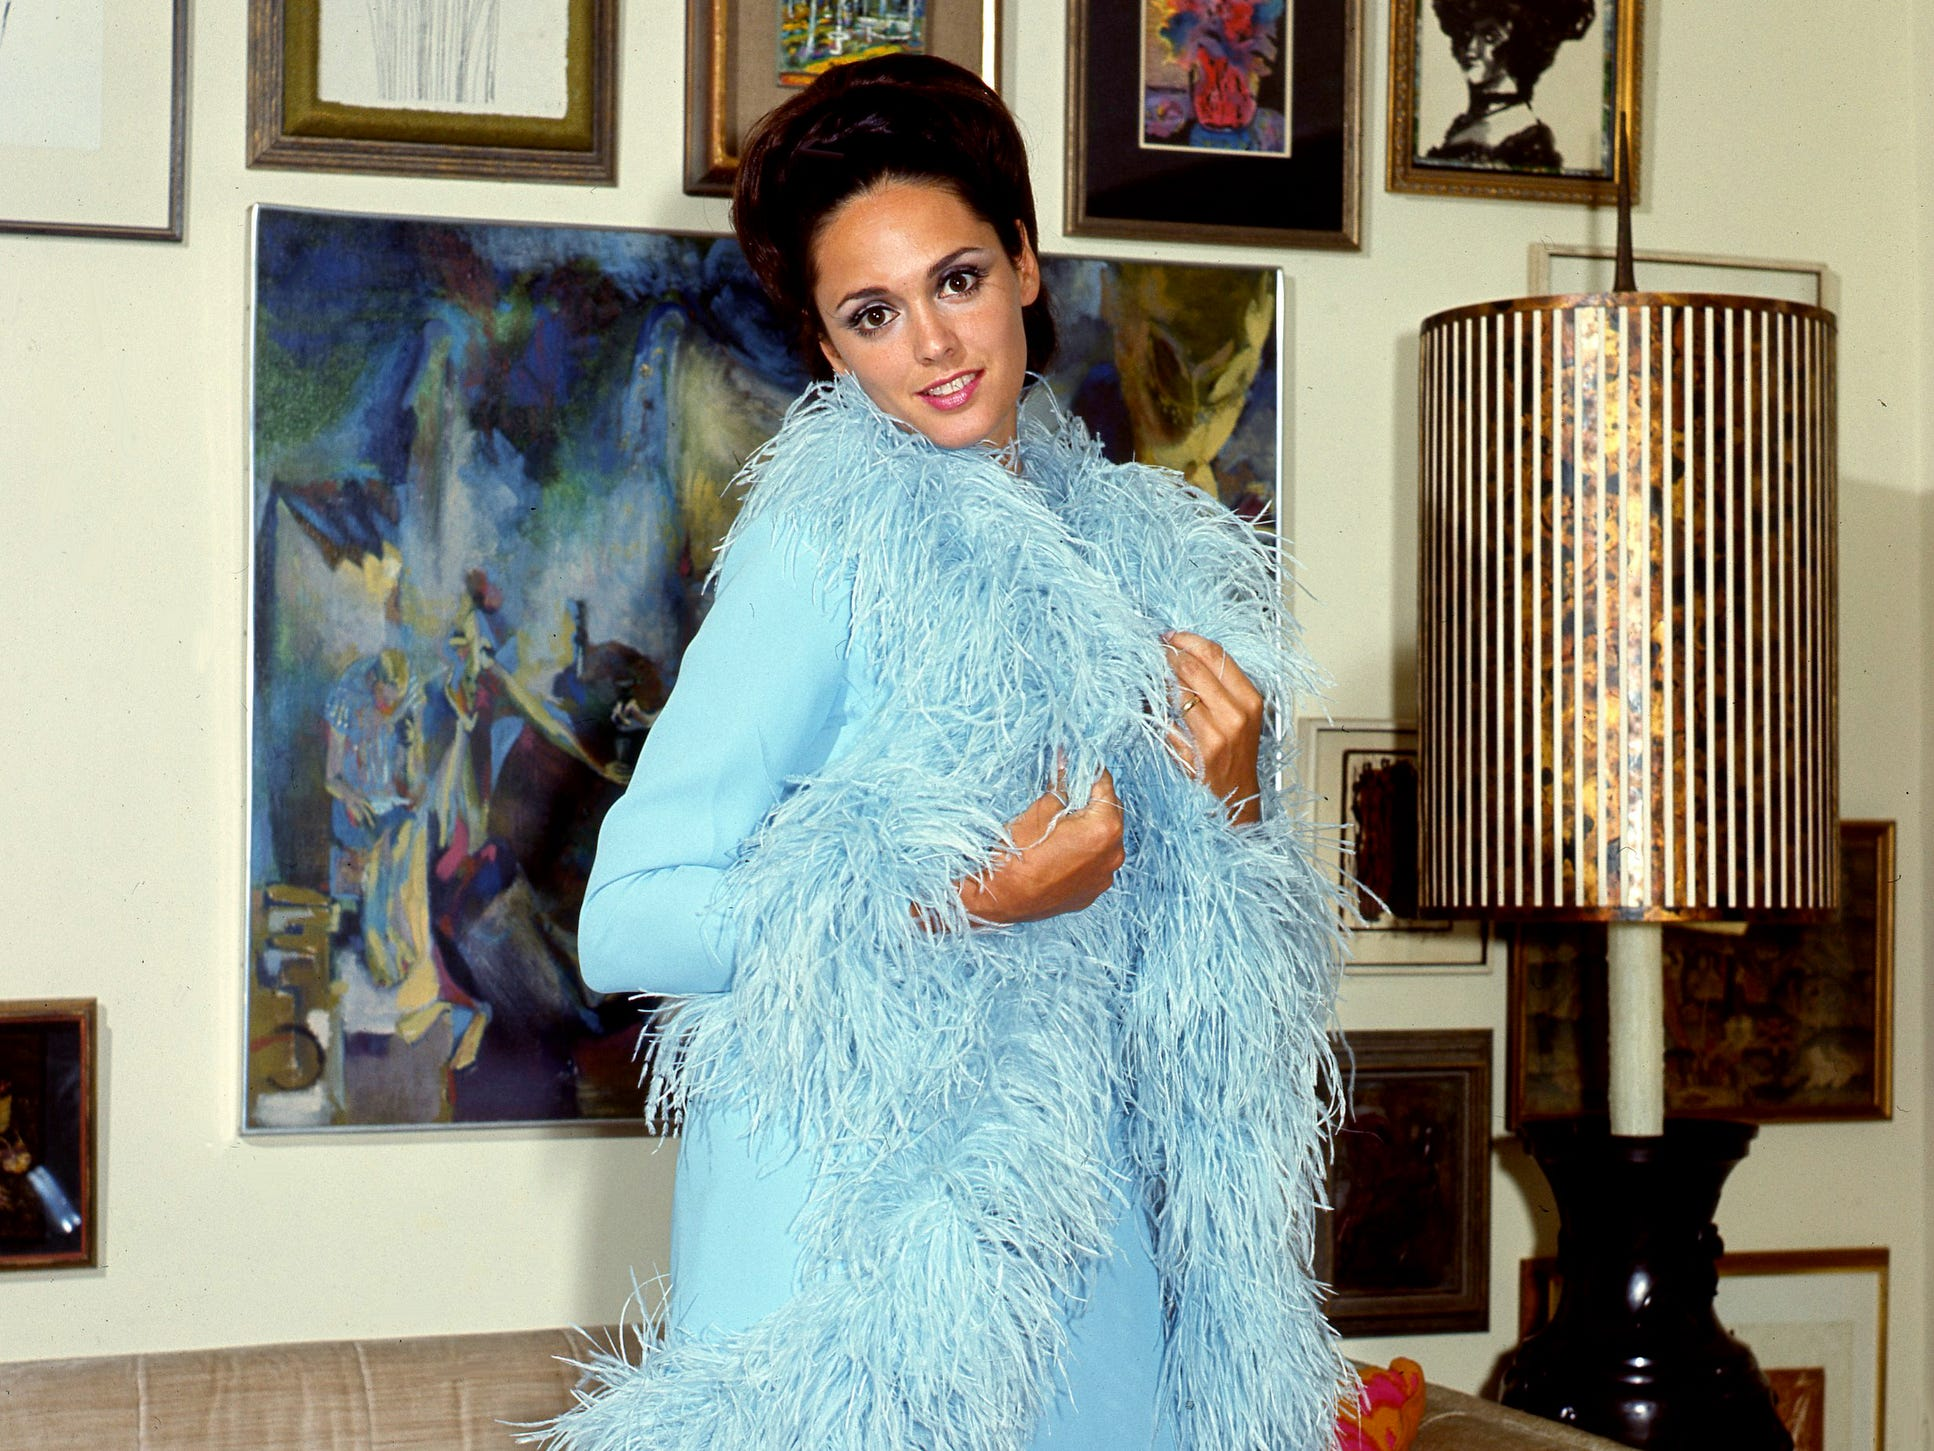 Model Linda Neal shows off a pale blue dress with feathery sleeveless coat Aug. 8, 1968, from the fall collection of California fashion designer Richard Blackwell in Nashville.